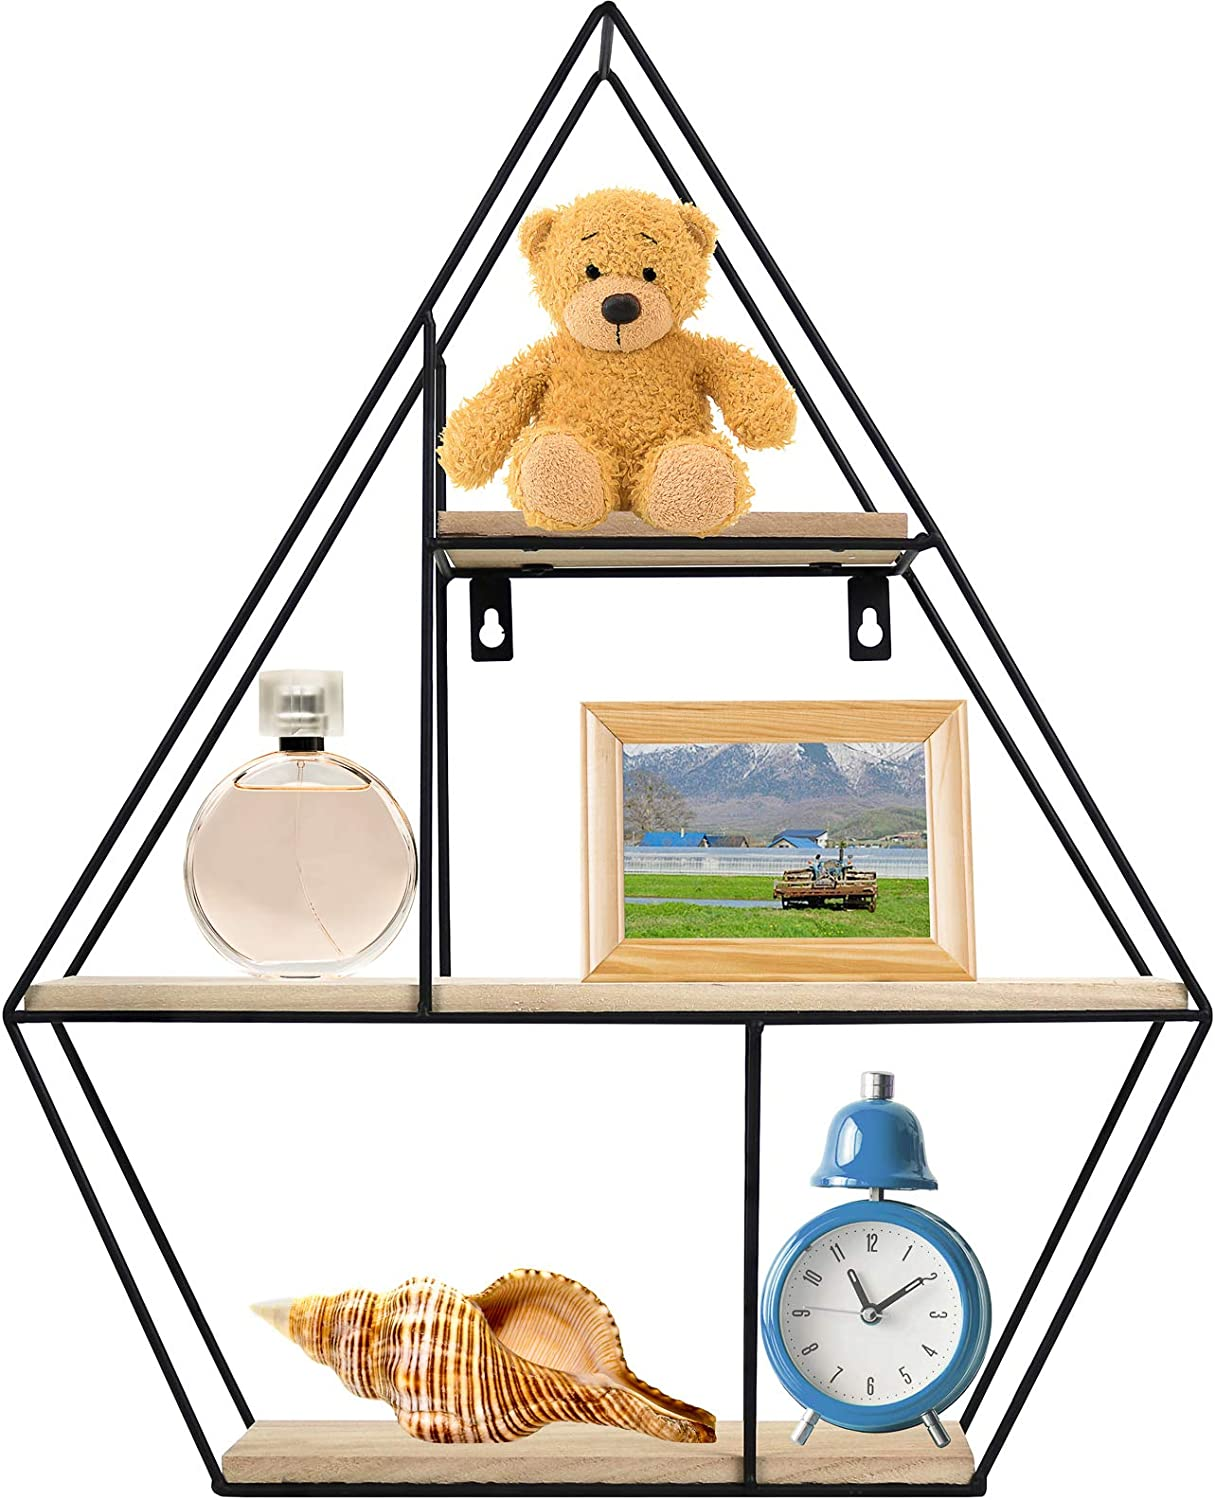 Greenco Geometric Diamond Gem Shaped Mounted Floating, Home Decor, Metal Wire and Rustic Wood Wall Storage Shelves for Bedroom, Living Room, Bathroom, Kitchen and Office, Natrual